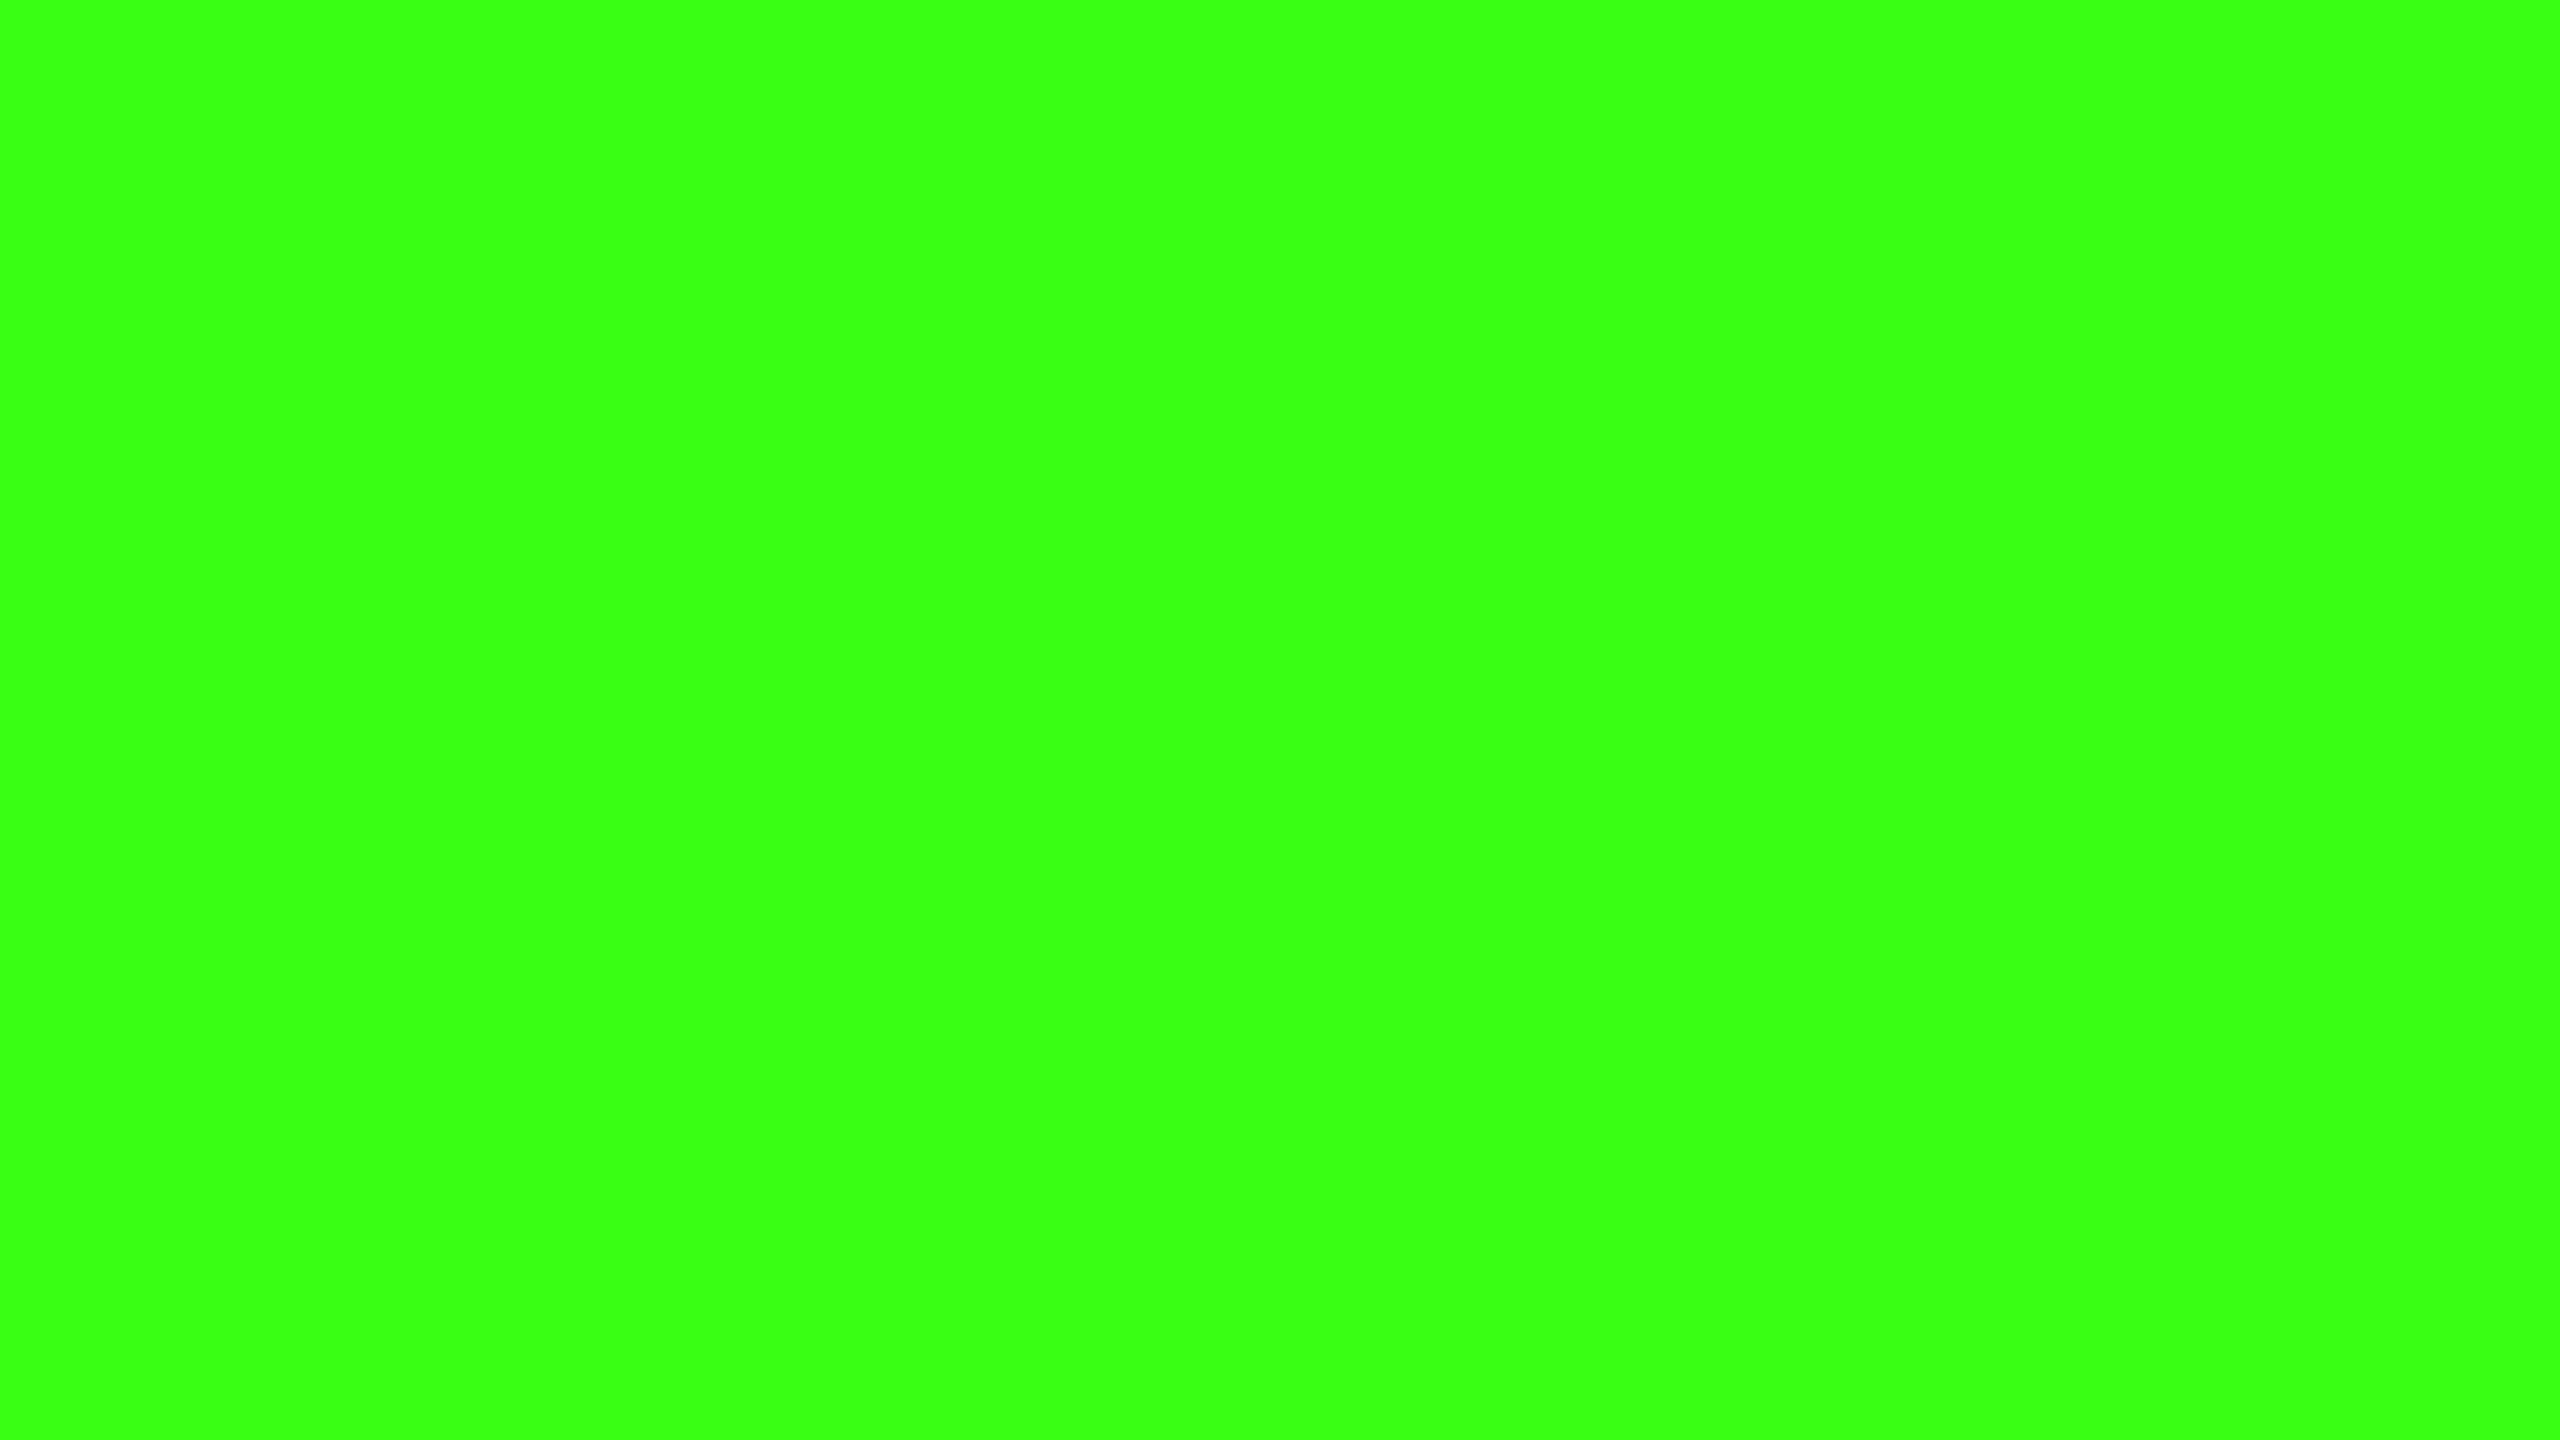 solid colour green image wallpaper